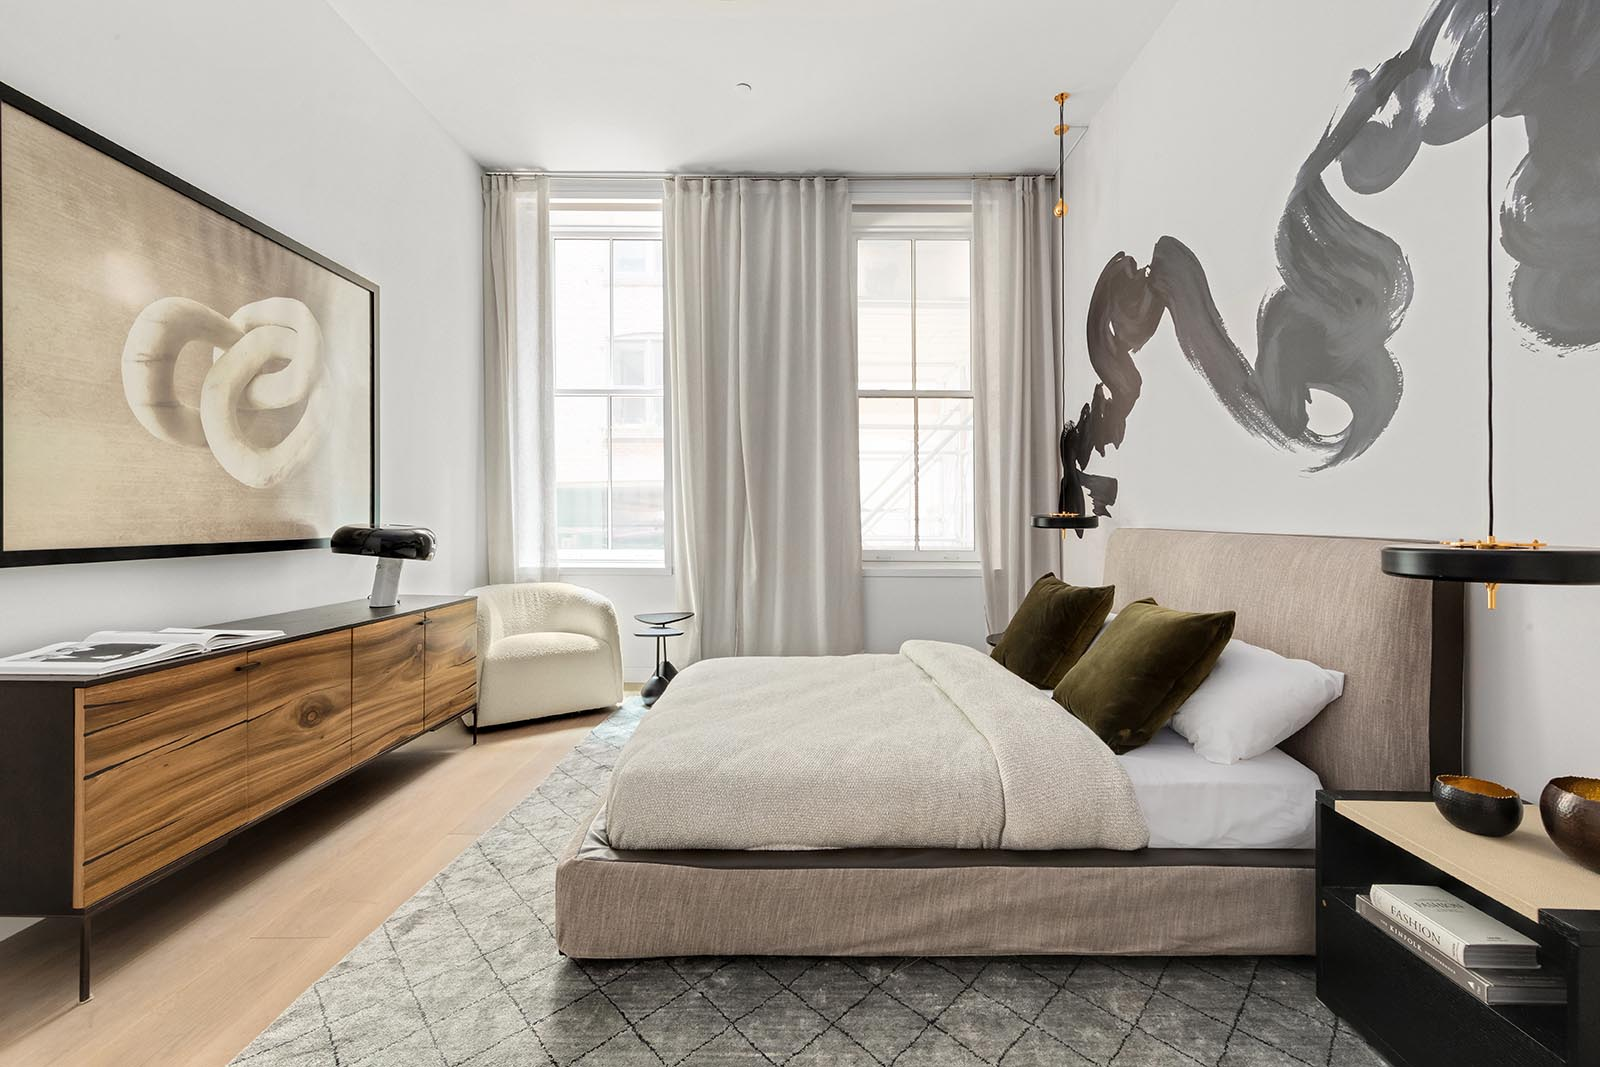 In this modern bedroom, large artwork has been used to fill the white walls.